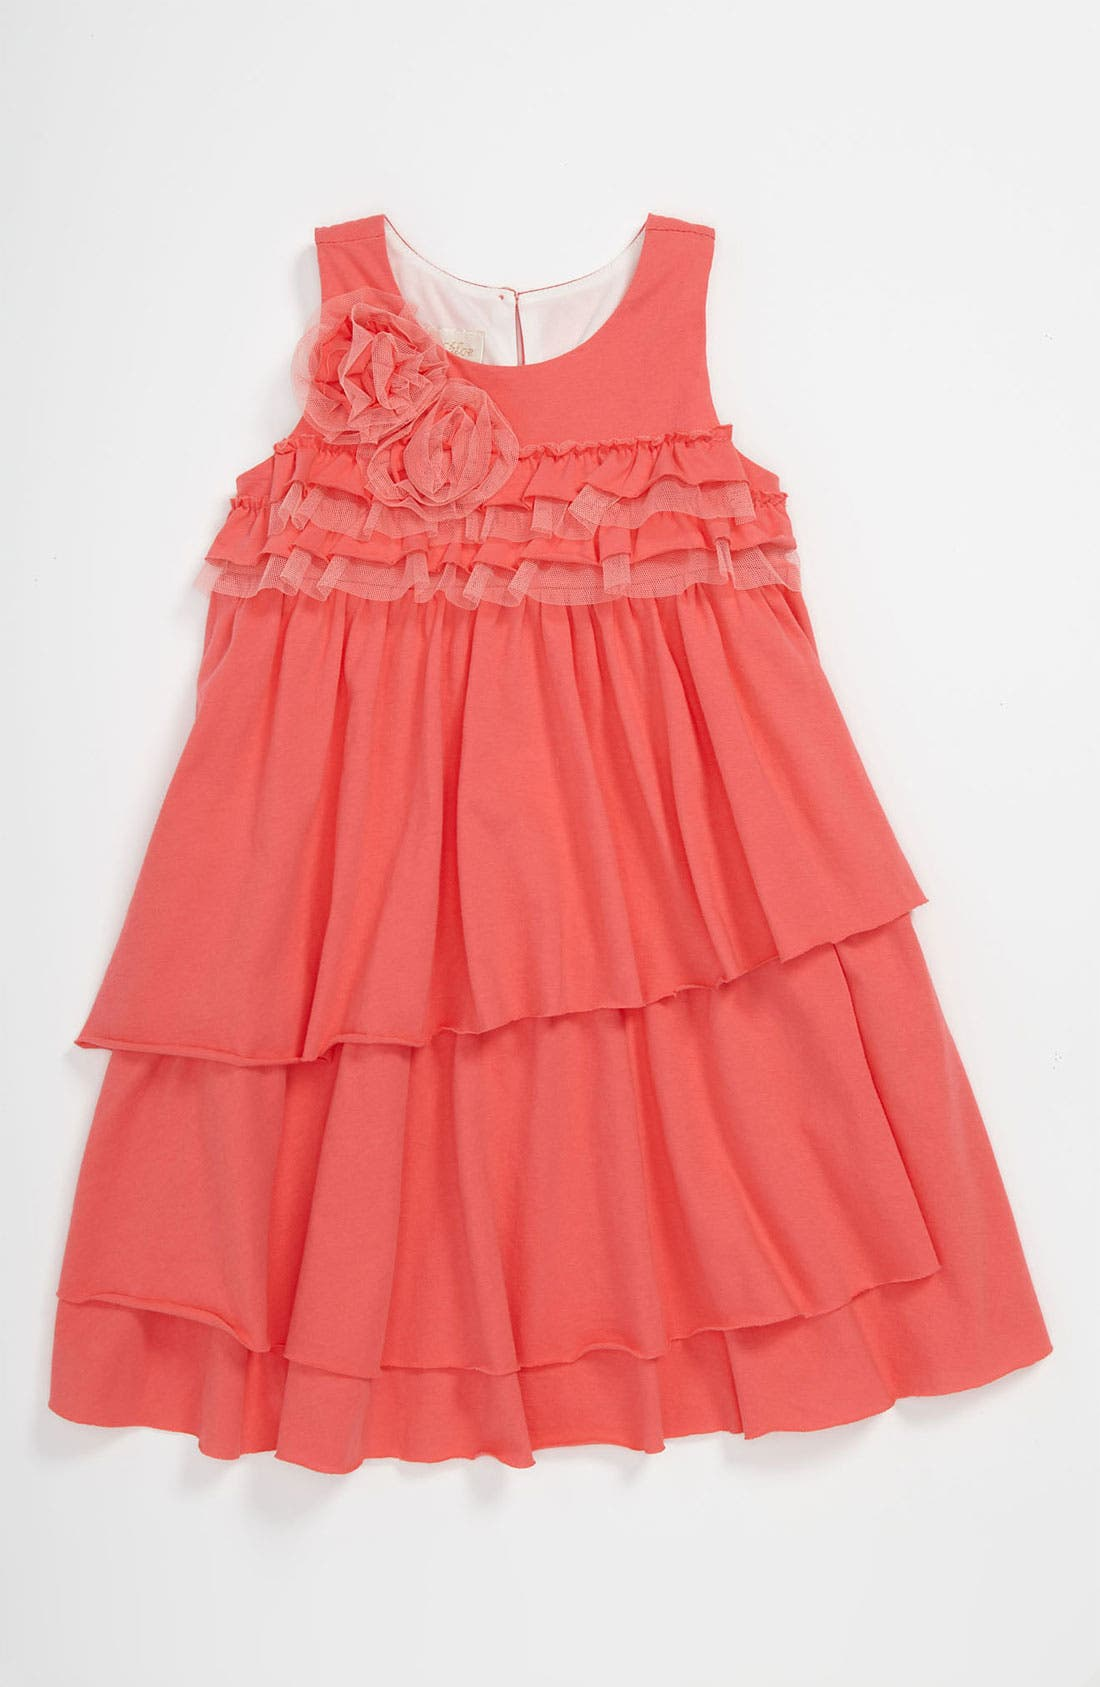 Main Image - Isobella & Chloe 'Jenny' Dress (Toddler)